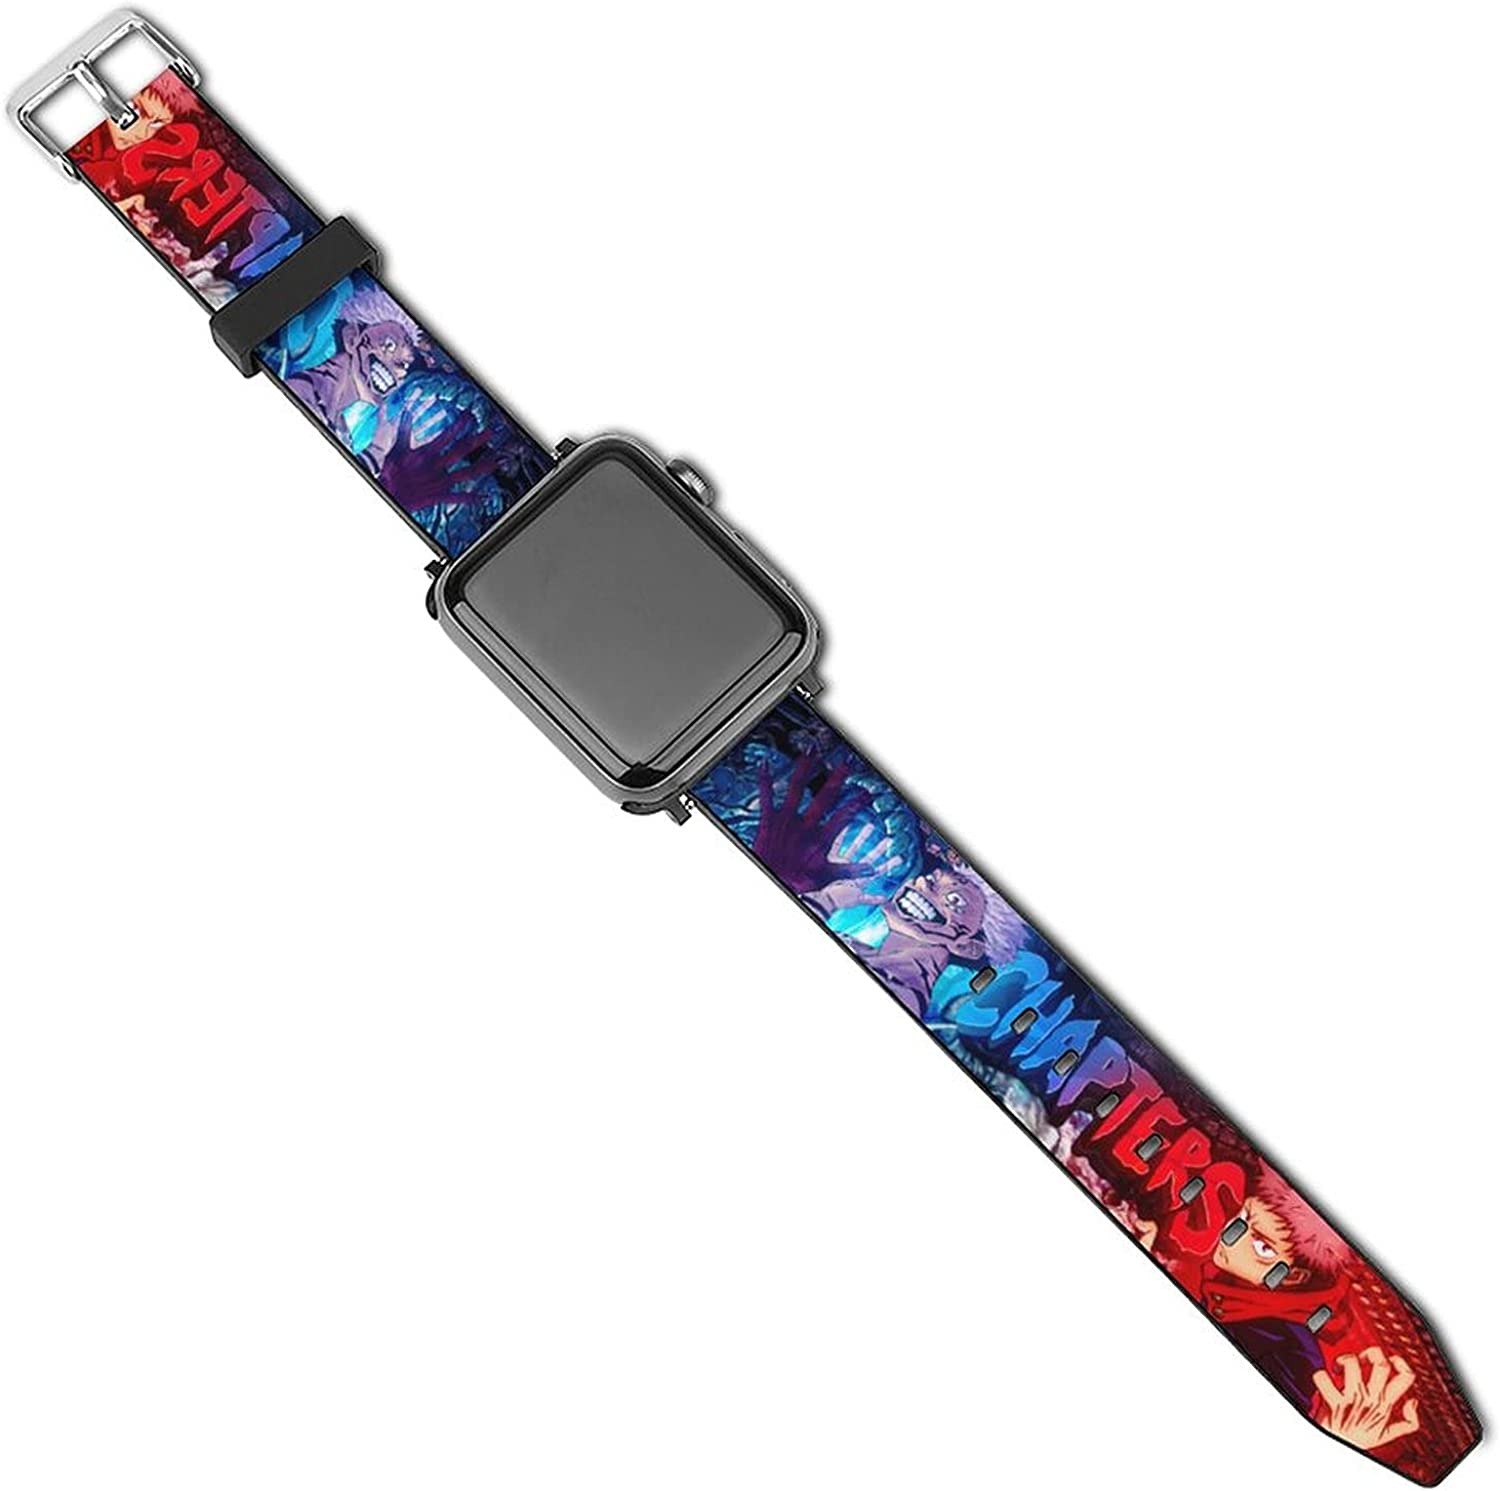 Jujutsu Kai_sen Apple Watch Leather Band 38mm/40mm,42mm/44mm soft Leather Wristband leather Anime Fans Strap Compatible with iWatch SE & Series 6 & Series 5 4 3 2 1